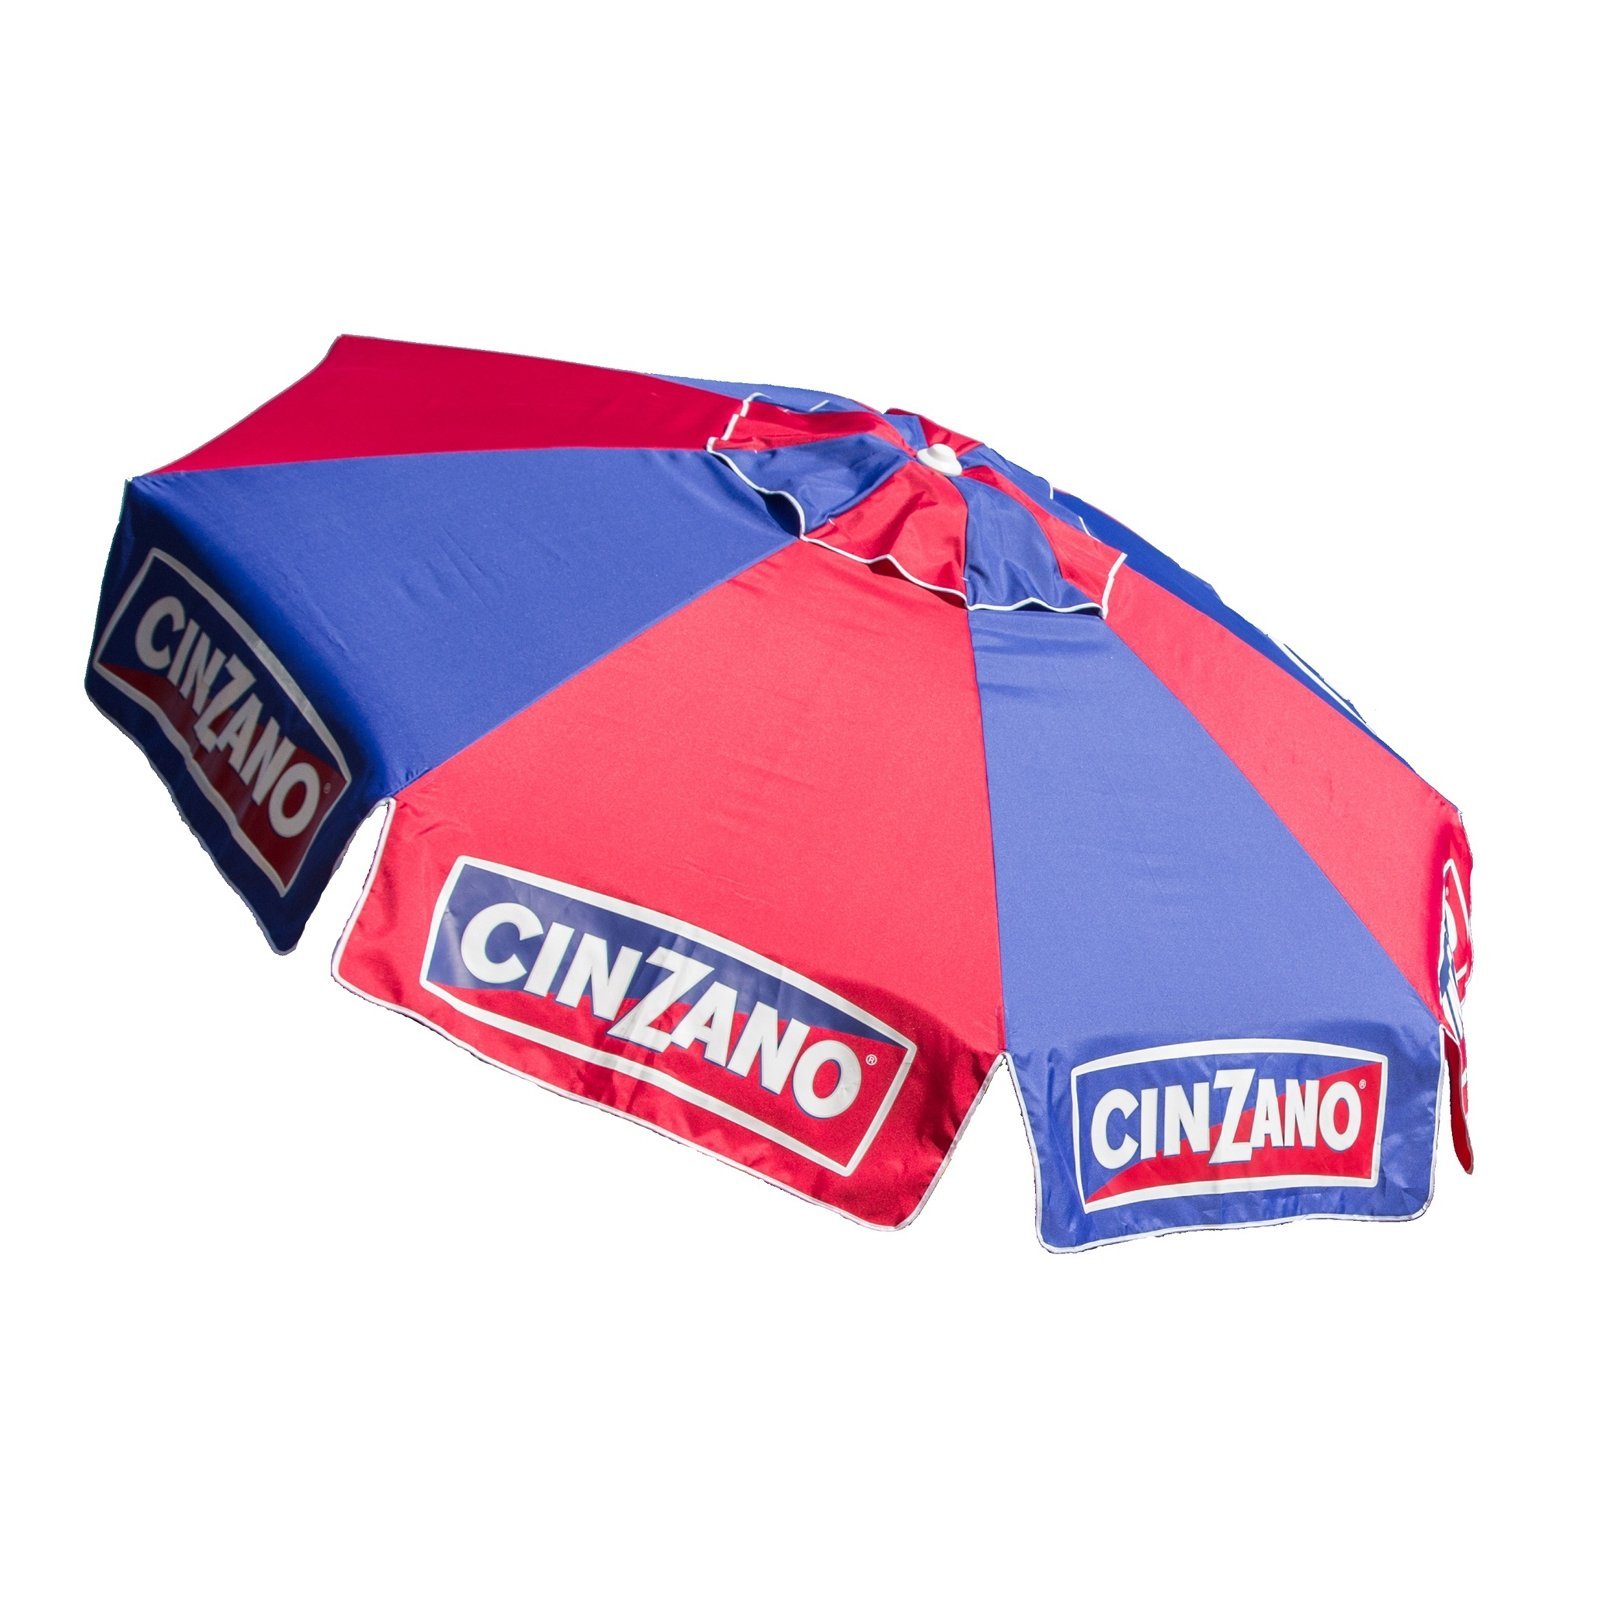 Outdoor Living Cinzano Market Umbrella - 8ft Fiberglass Ribs